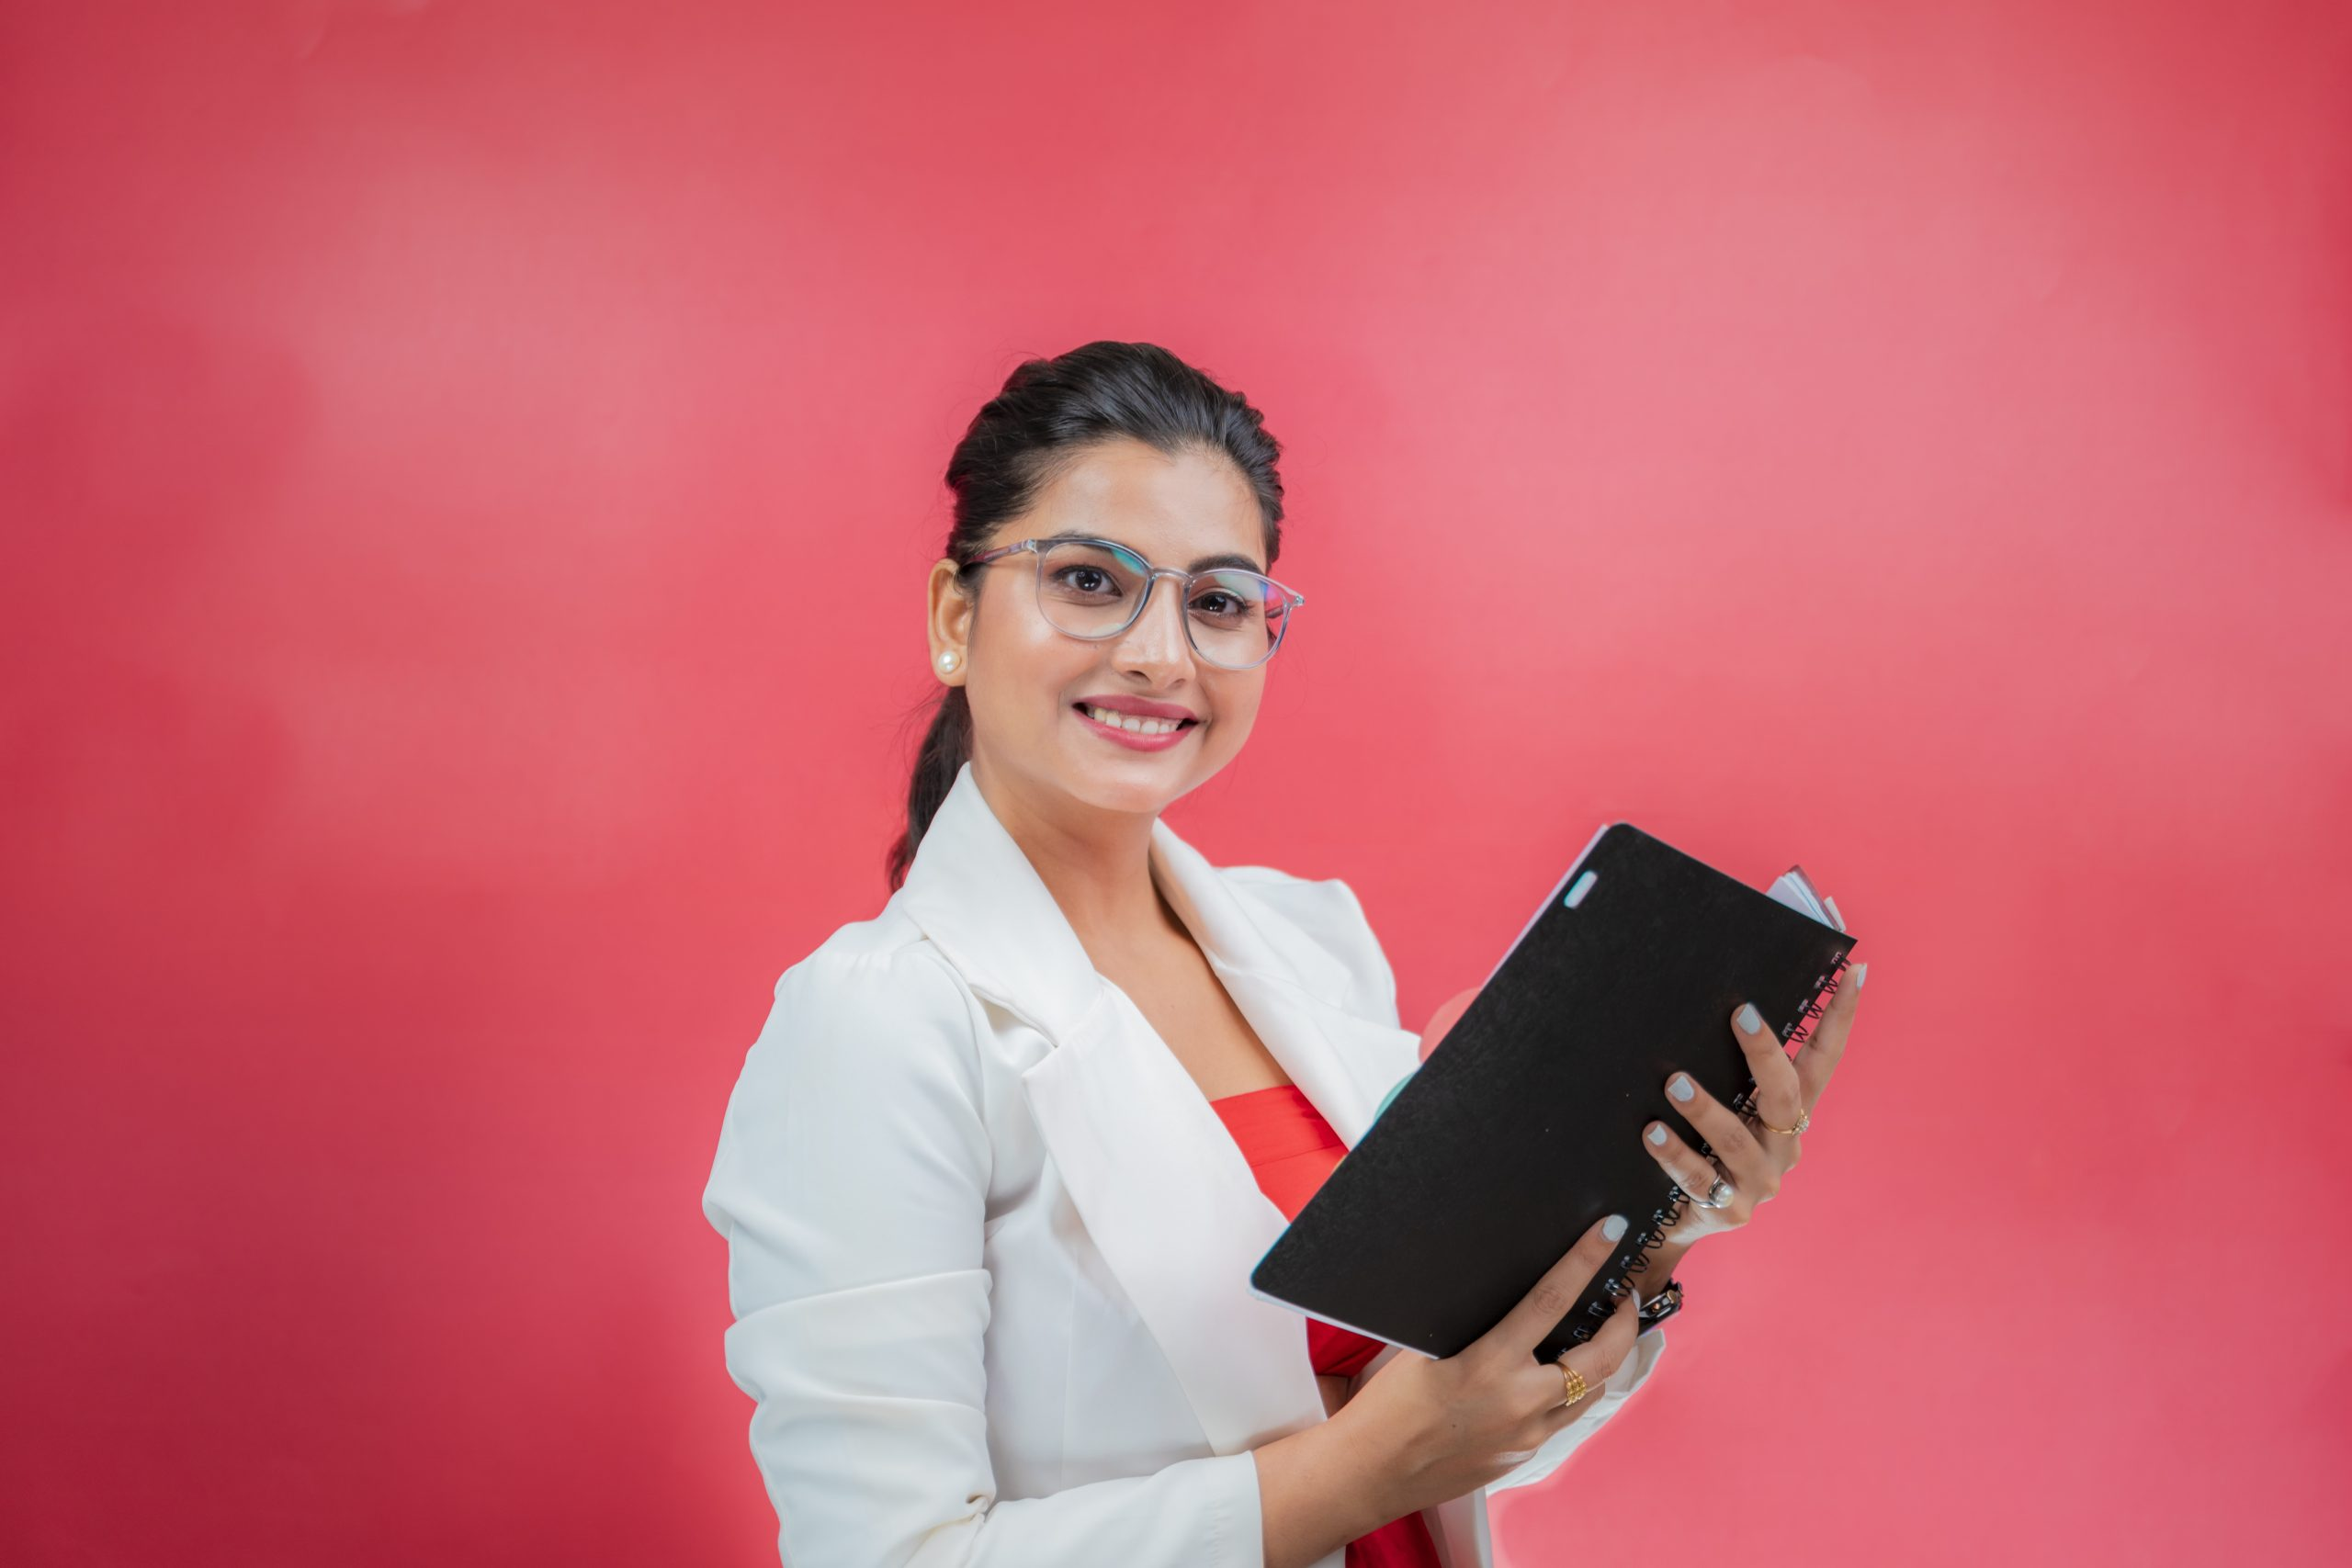 Professional woman holding notebook